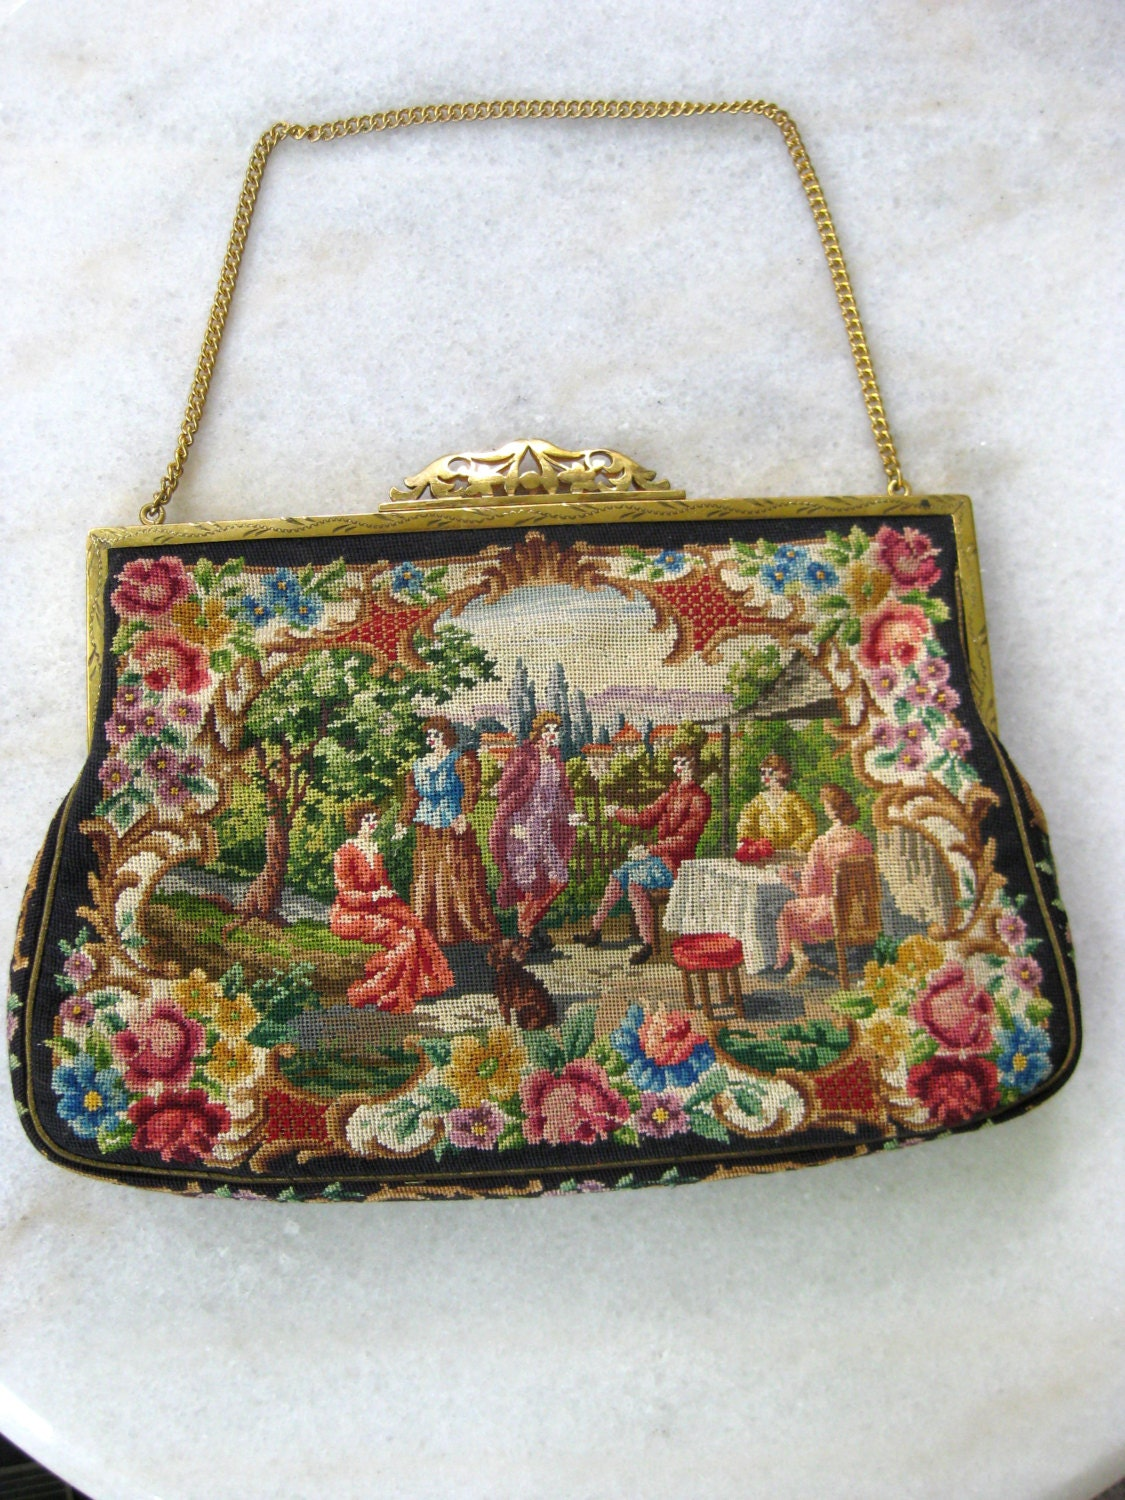 Vintage embroidered clutch purse lovely by forthehipsterinyou